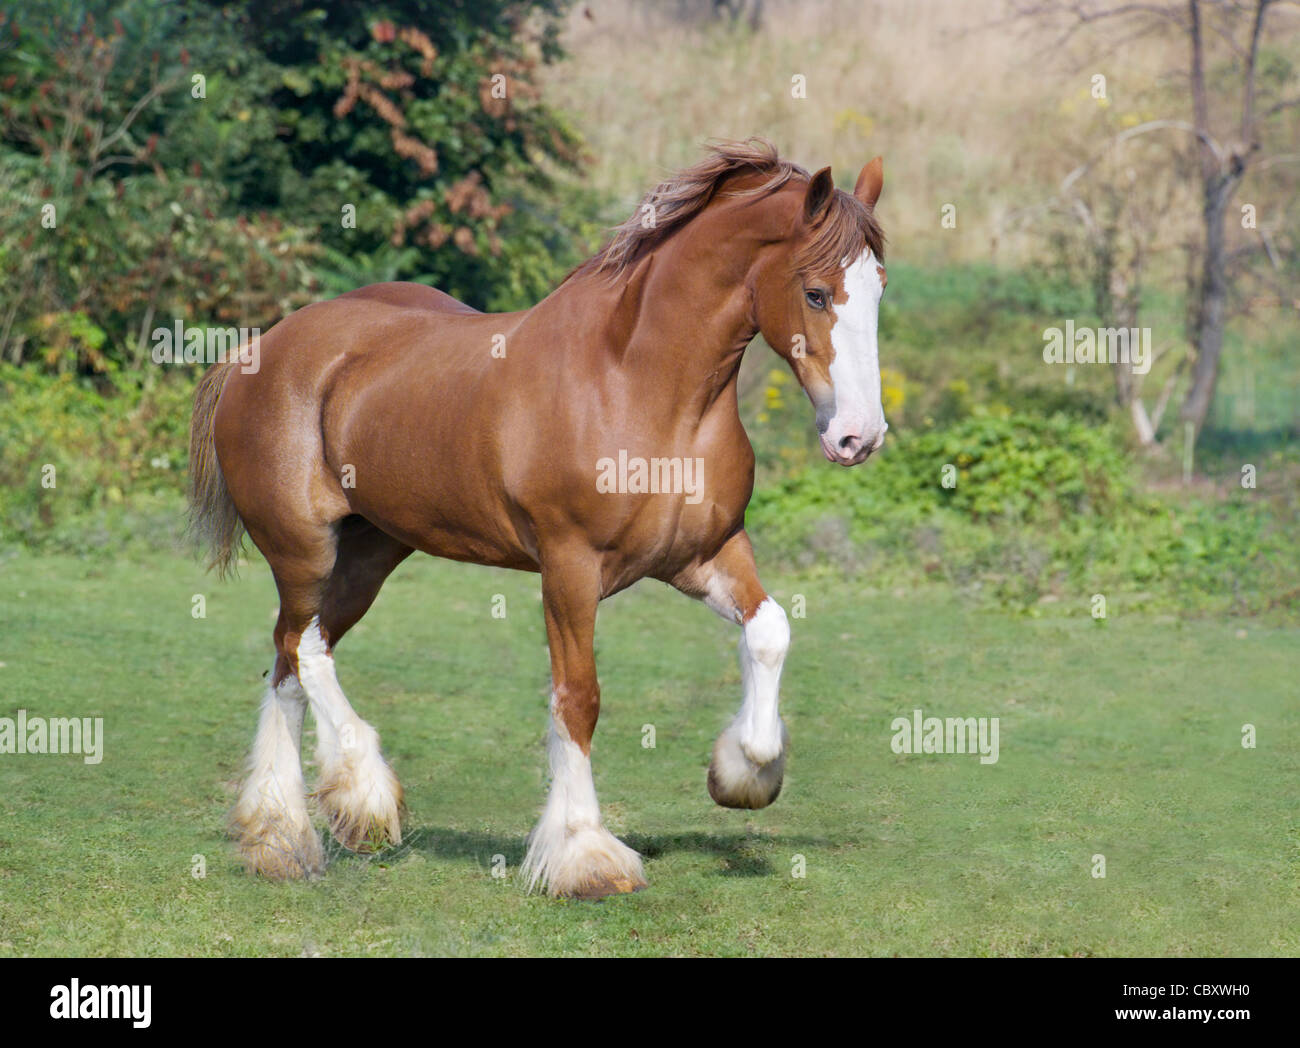 Clydesdale Draft Horse colt trots - Stock Image